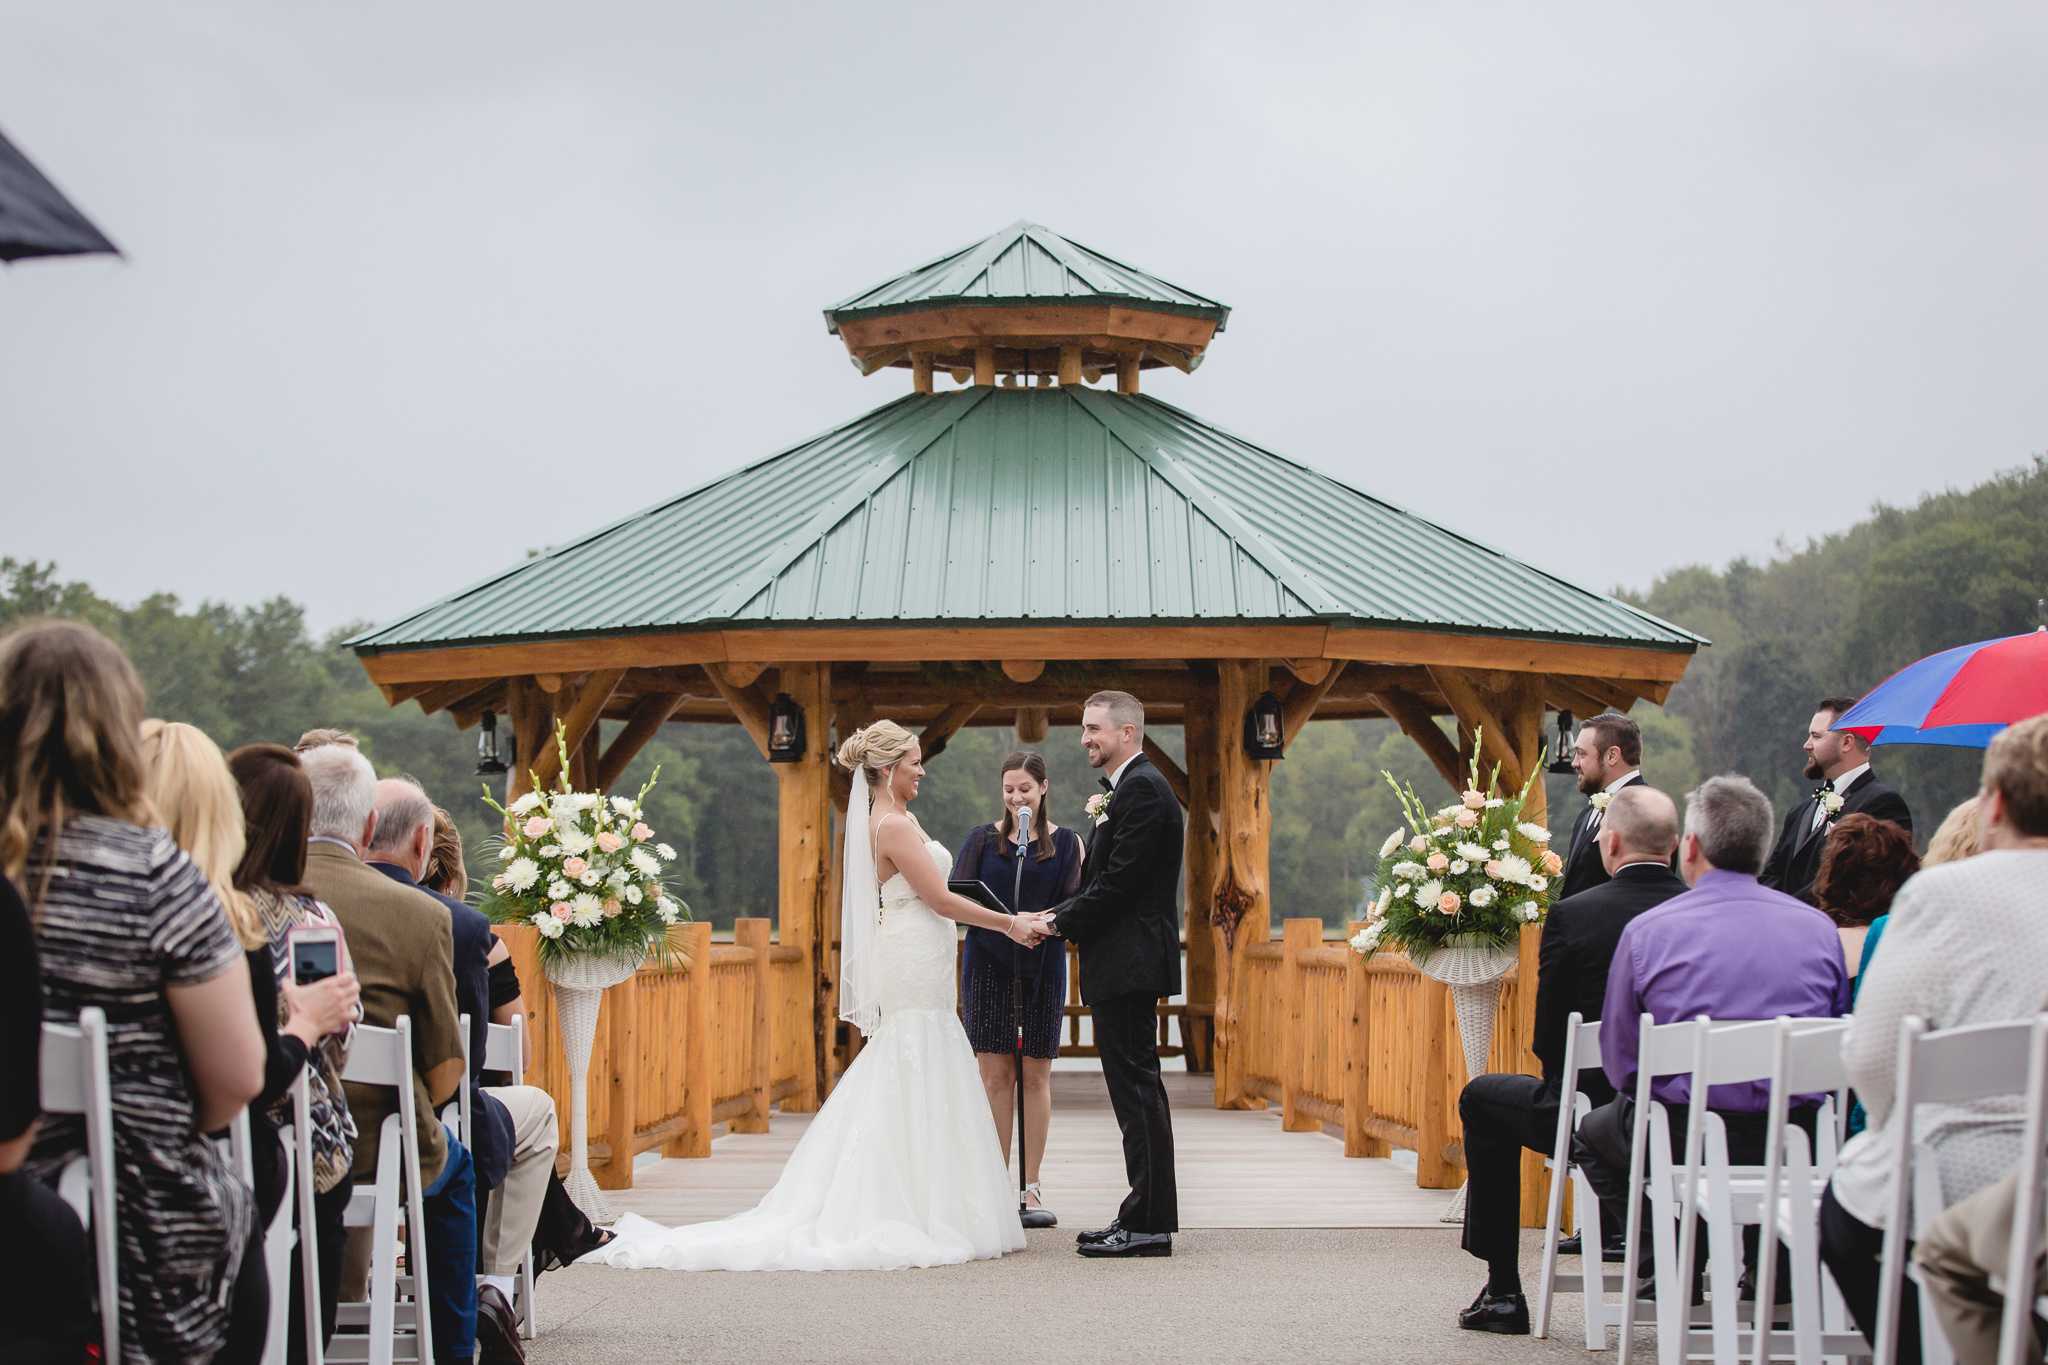 Outdoor wedding ceremony at the Gathering Place at Darlington Lake